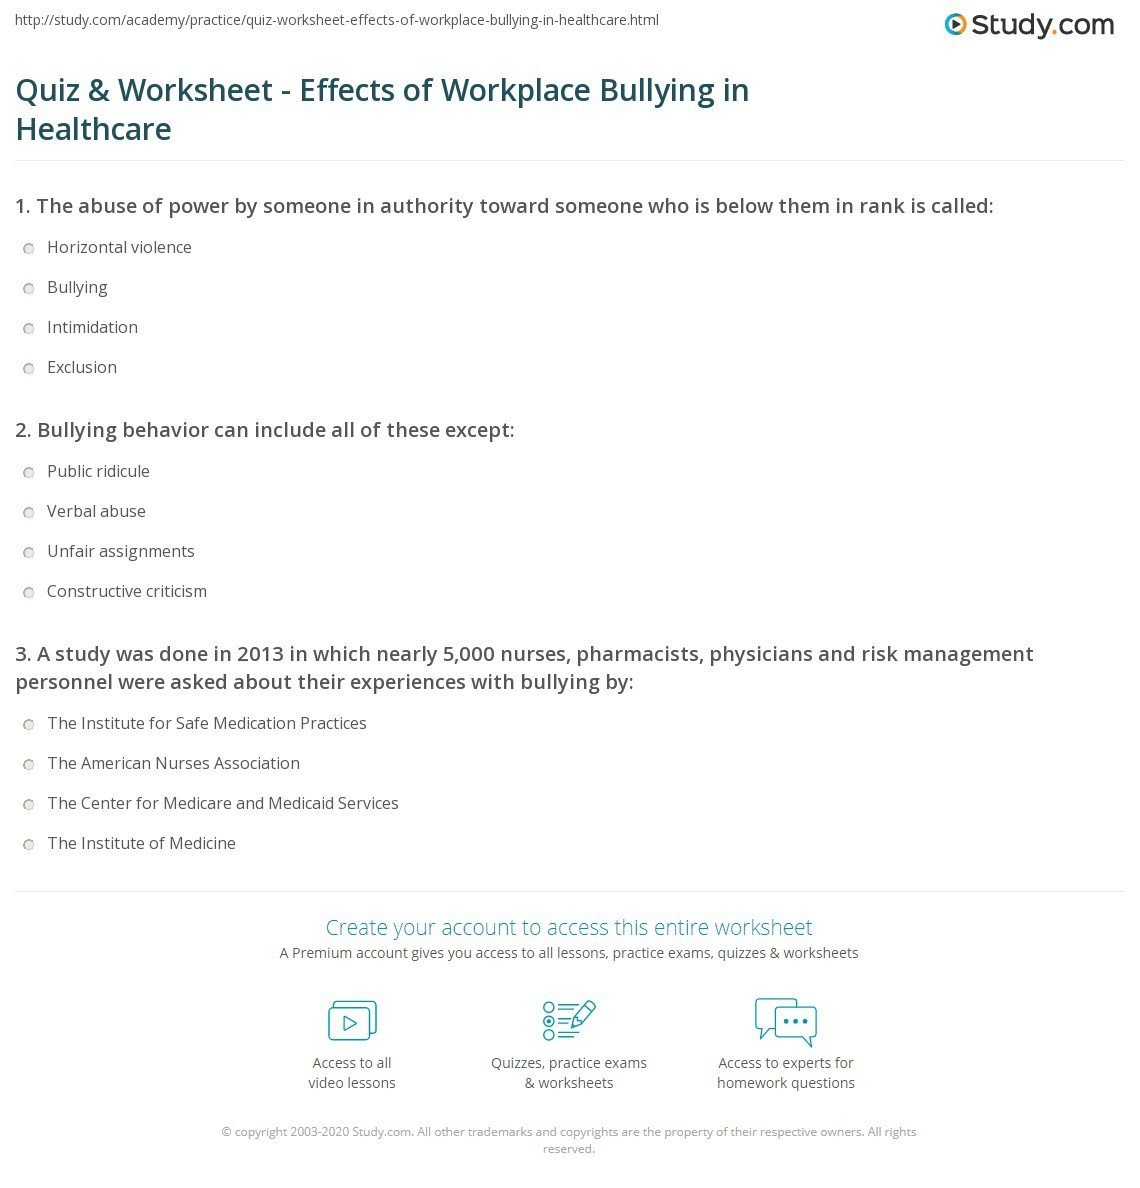 quiz worksheet effects of workplace bullying in healthcare